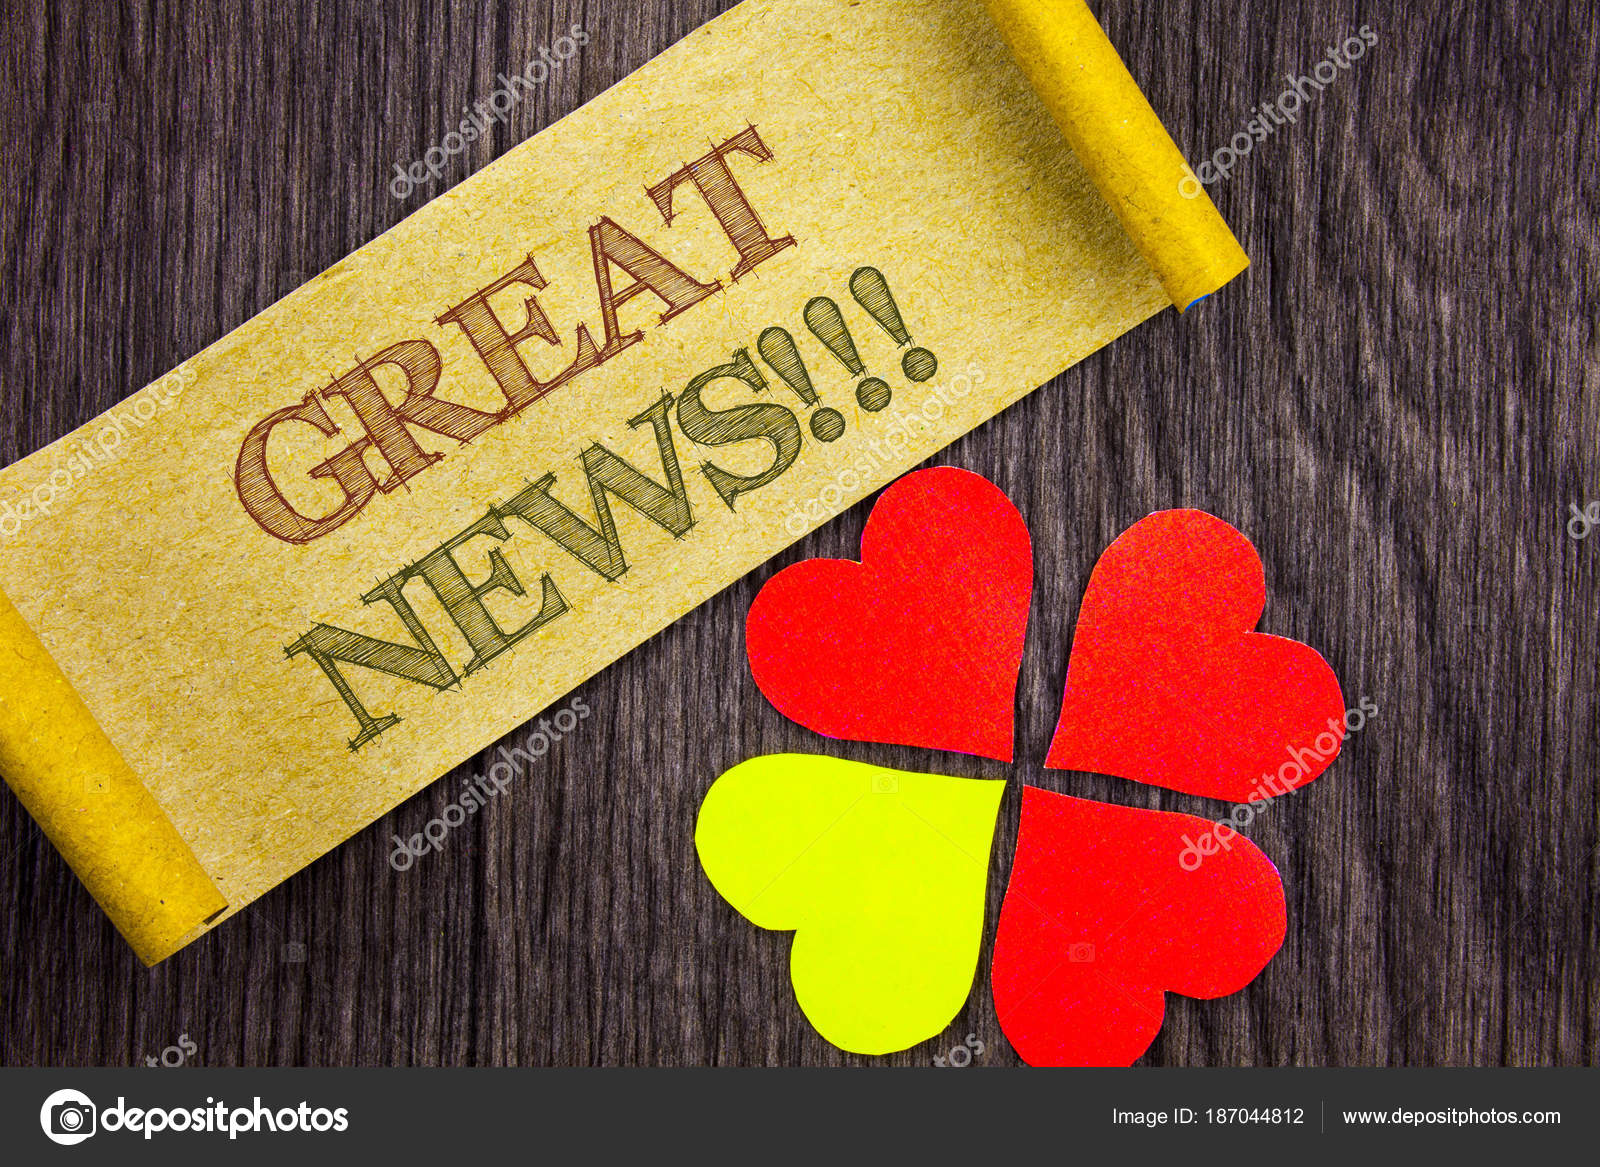 Word Writing Text Great News Conceptual Photo Success Newspaper Information Cele Tion Written Sticky Note Paper With Love Heart Next To It The Wooden